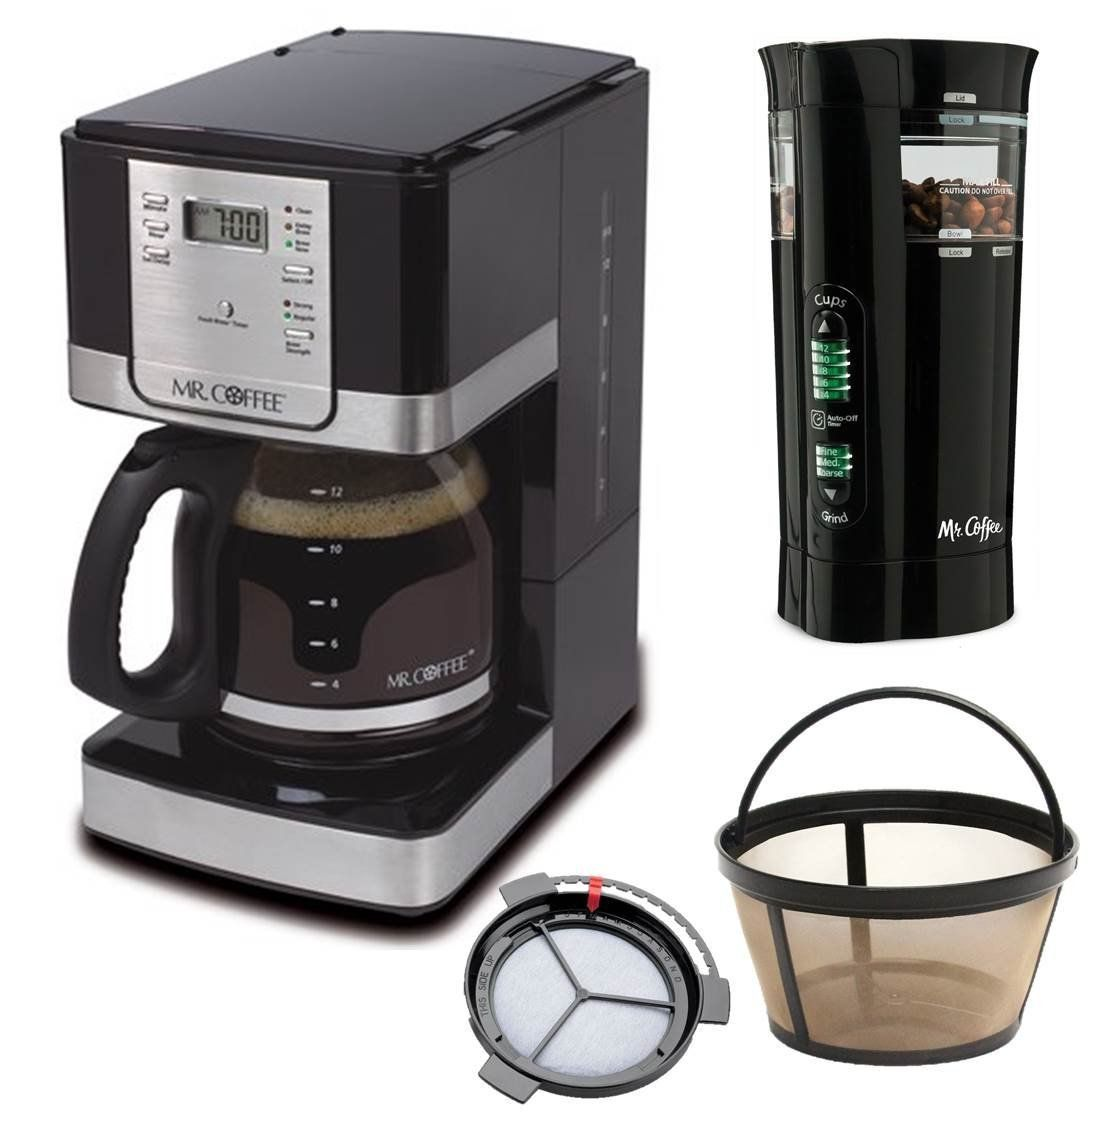 Mr coffee cup programmable coffee maker coffee grinders